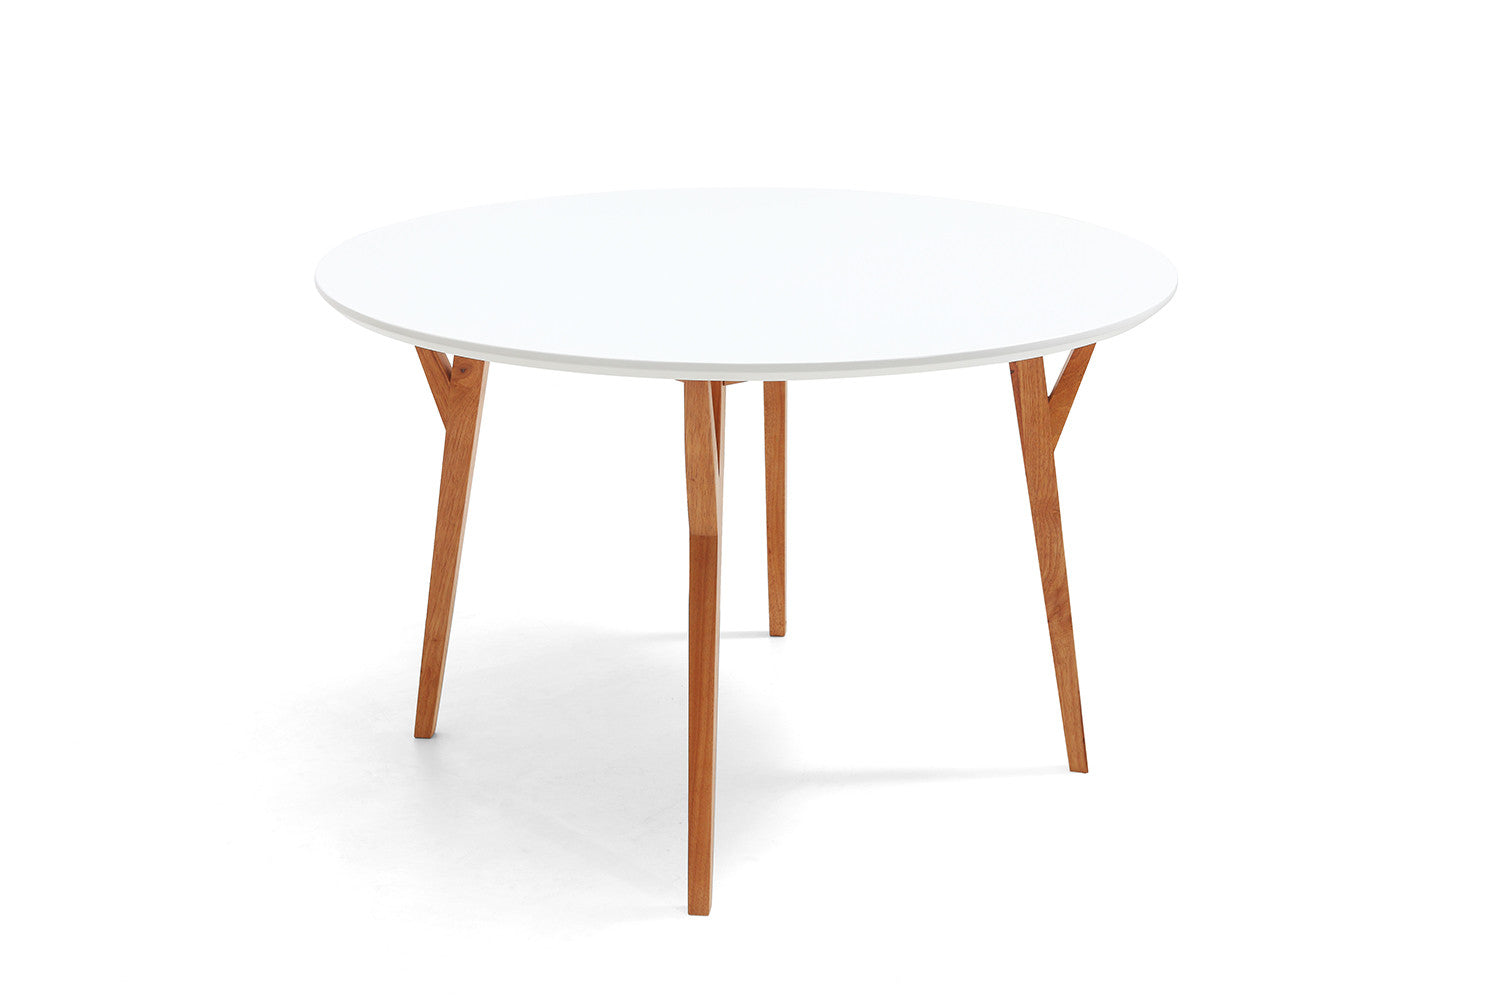 Table de salle manger ronde design scandinave moesa for Table salle manger